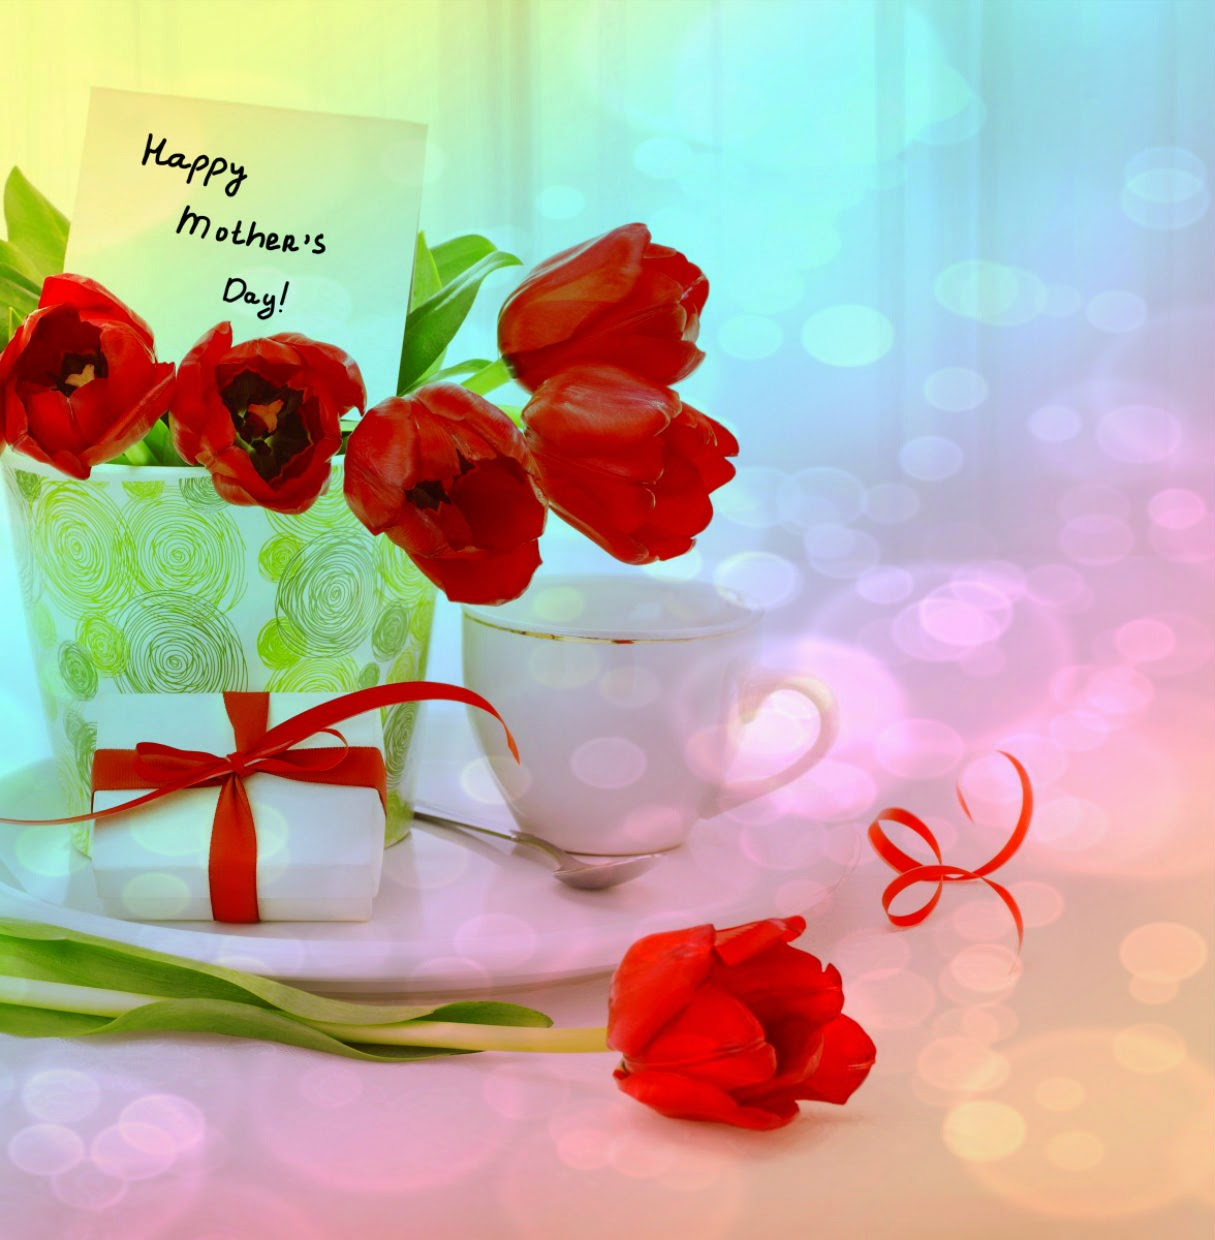 Online mothers day wishes cards greetings images chaska gallery beautiful red rose greetings cards for my sweet and lovely mom m4hsunfo